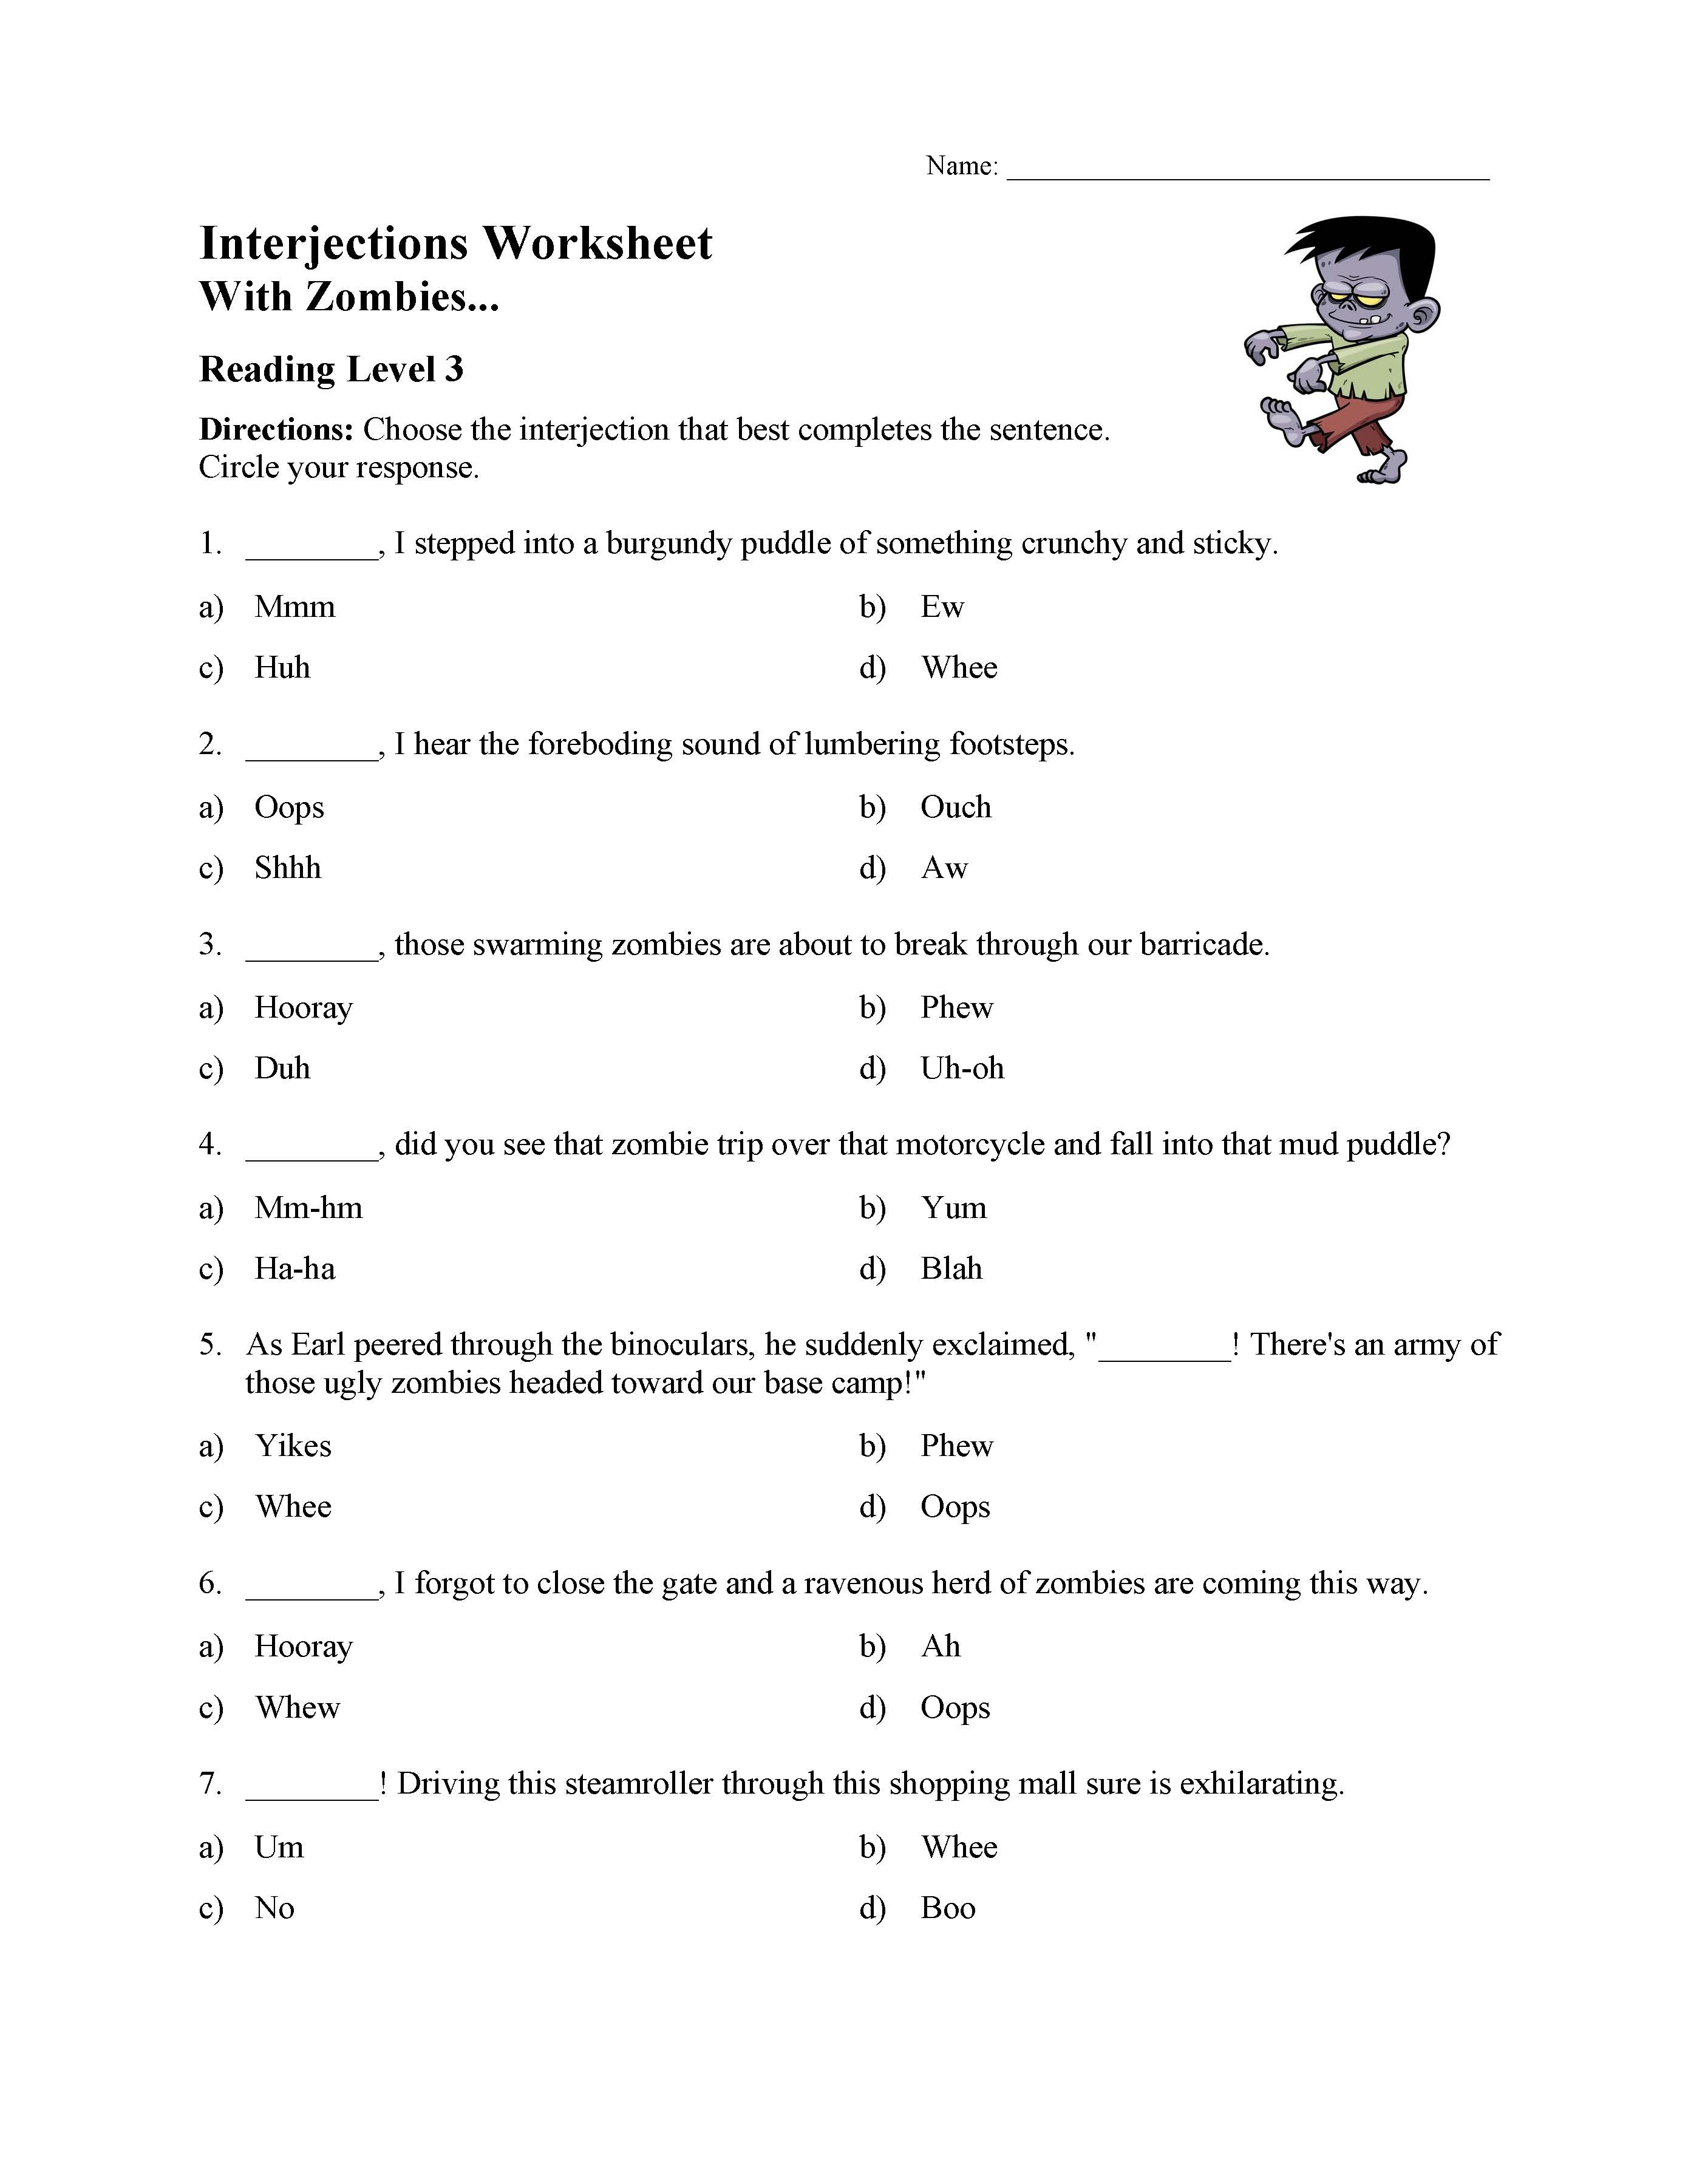 Interjections Worksheet